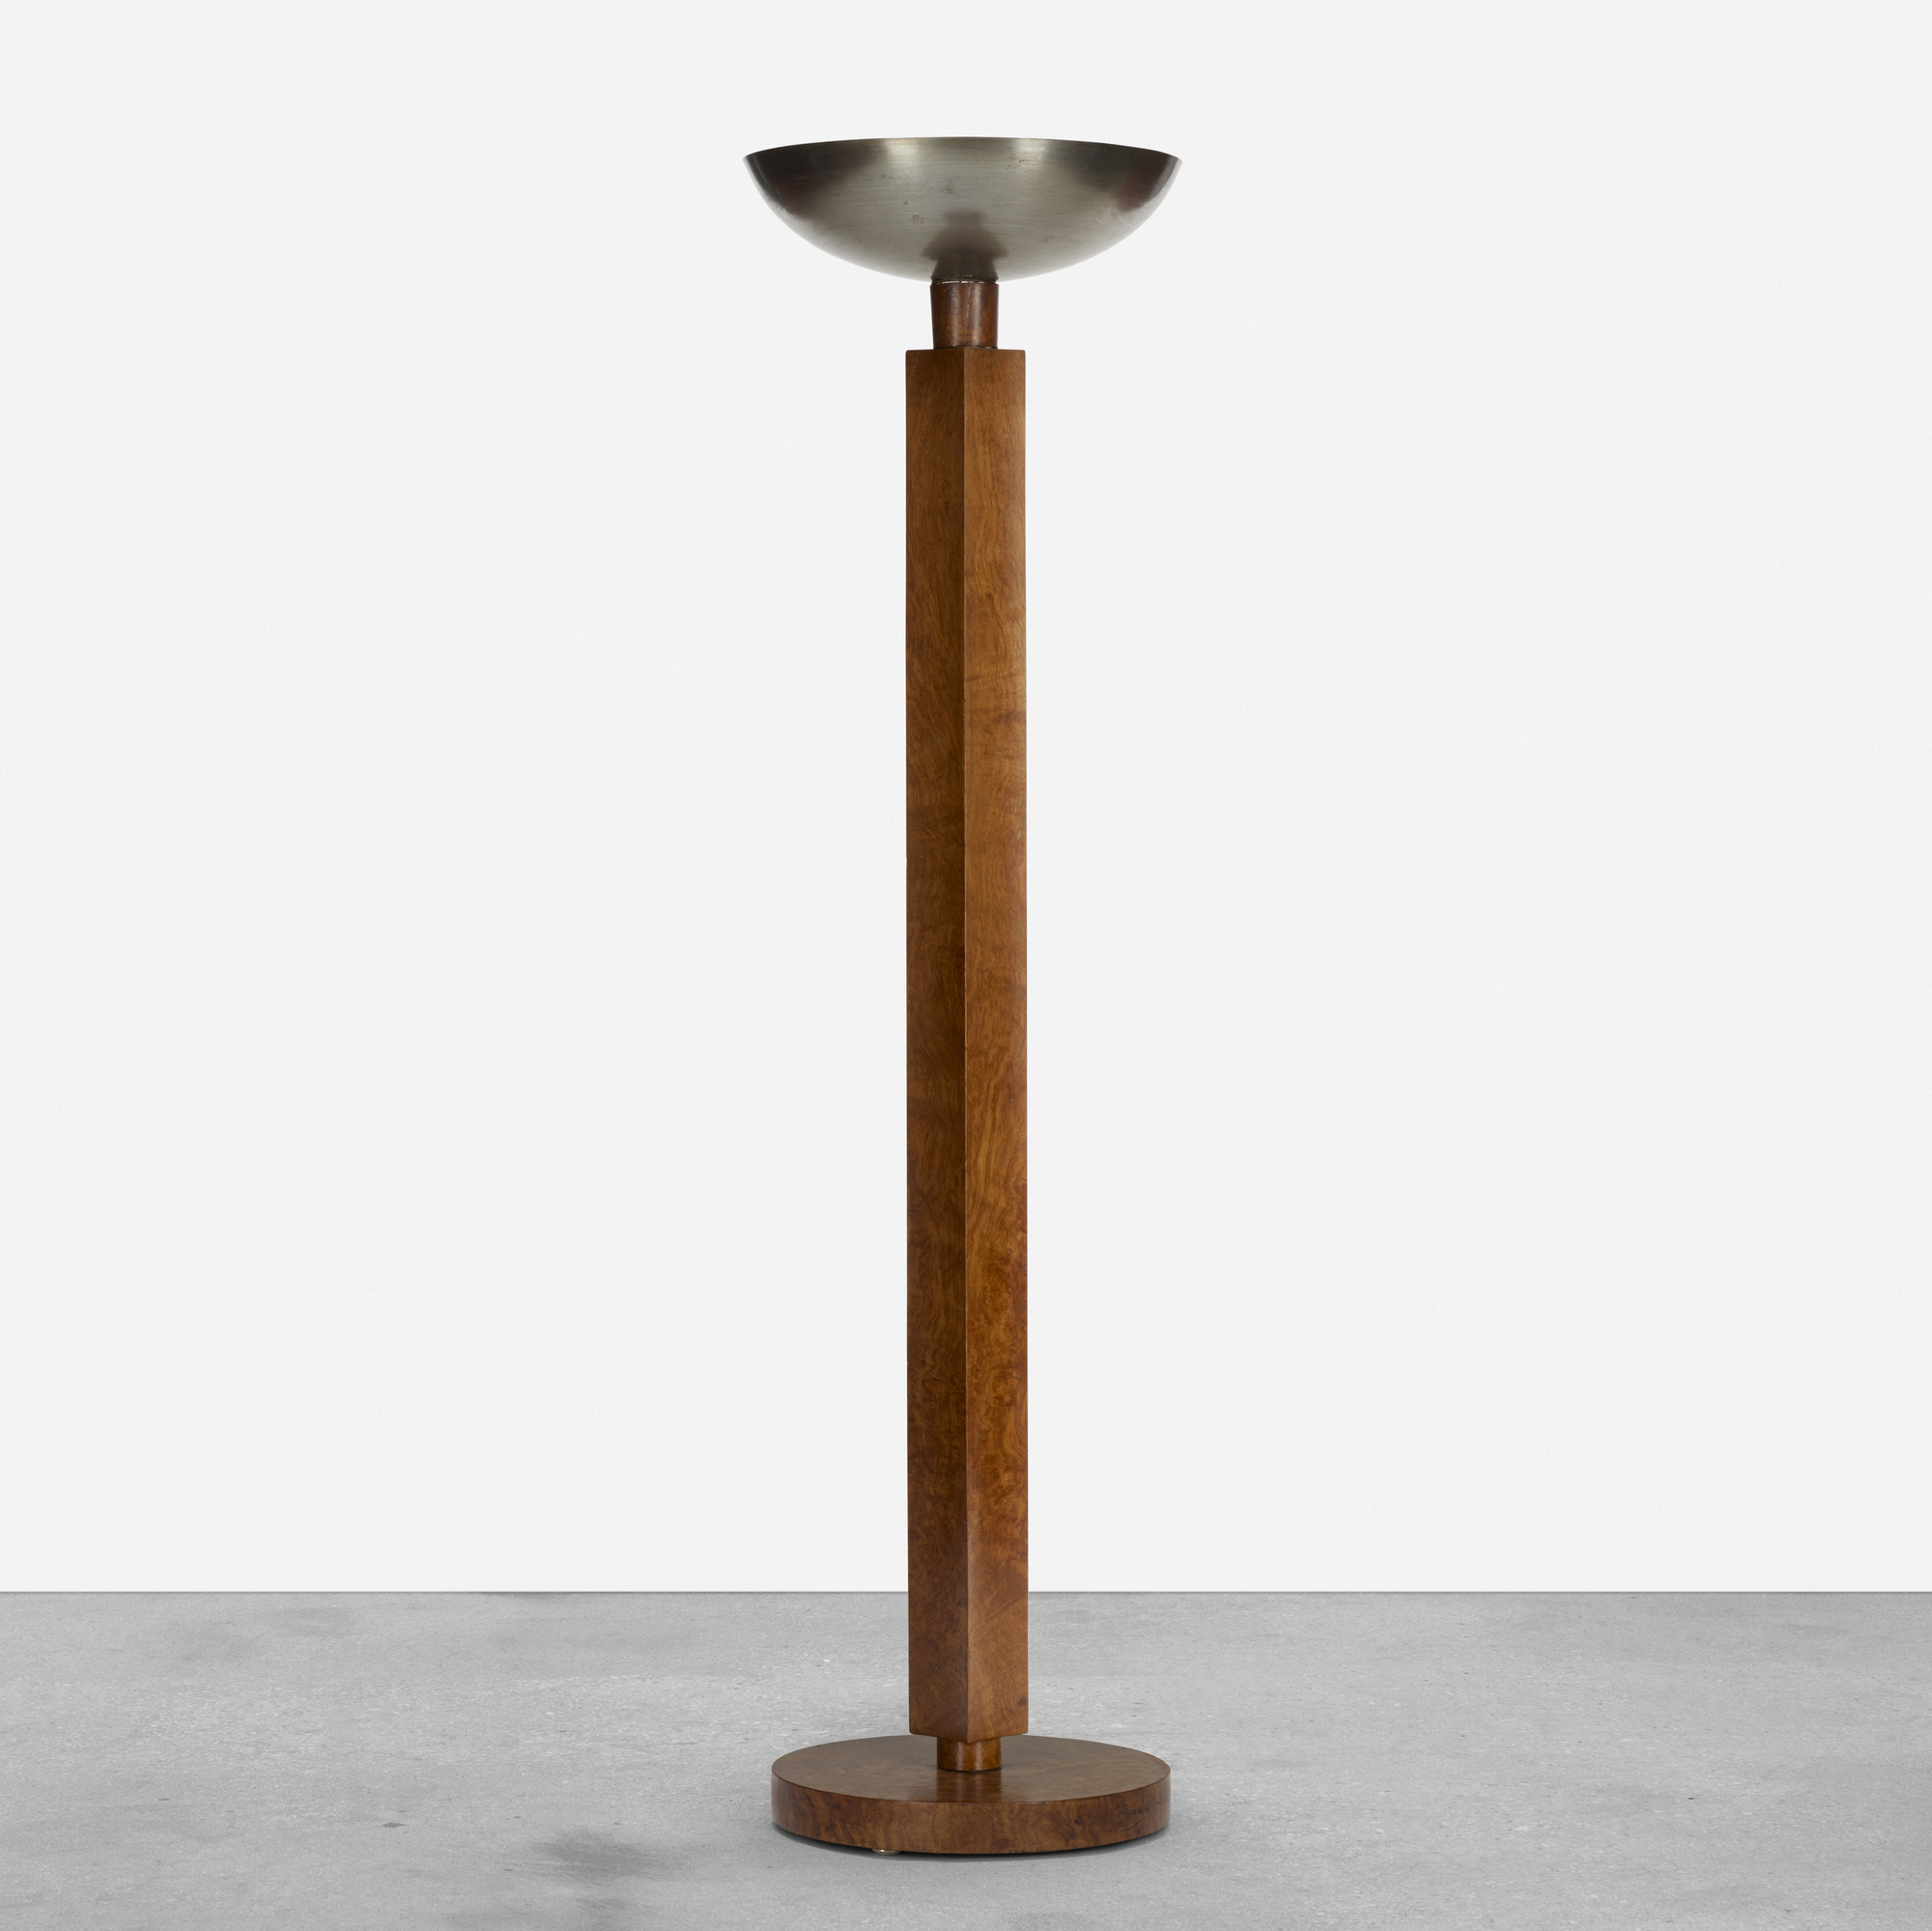 192: Samuel Marx / floor lamp from the Morton D. May House (1 of 3)